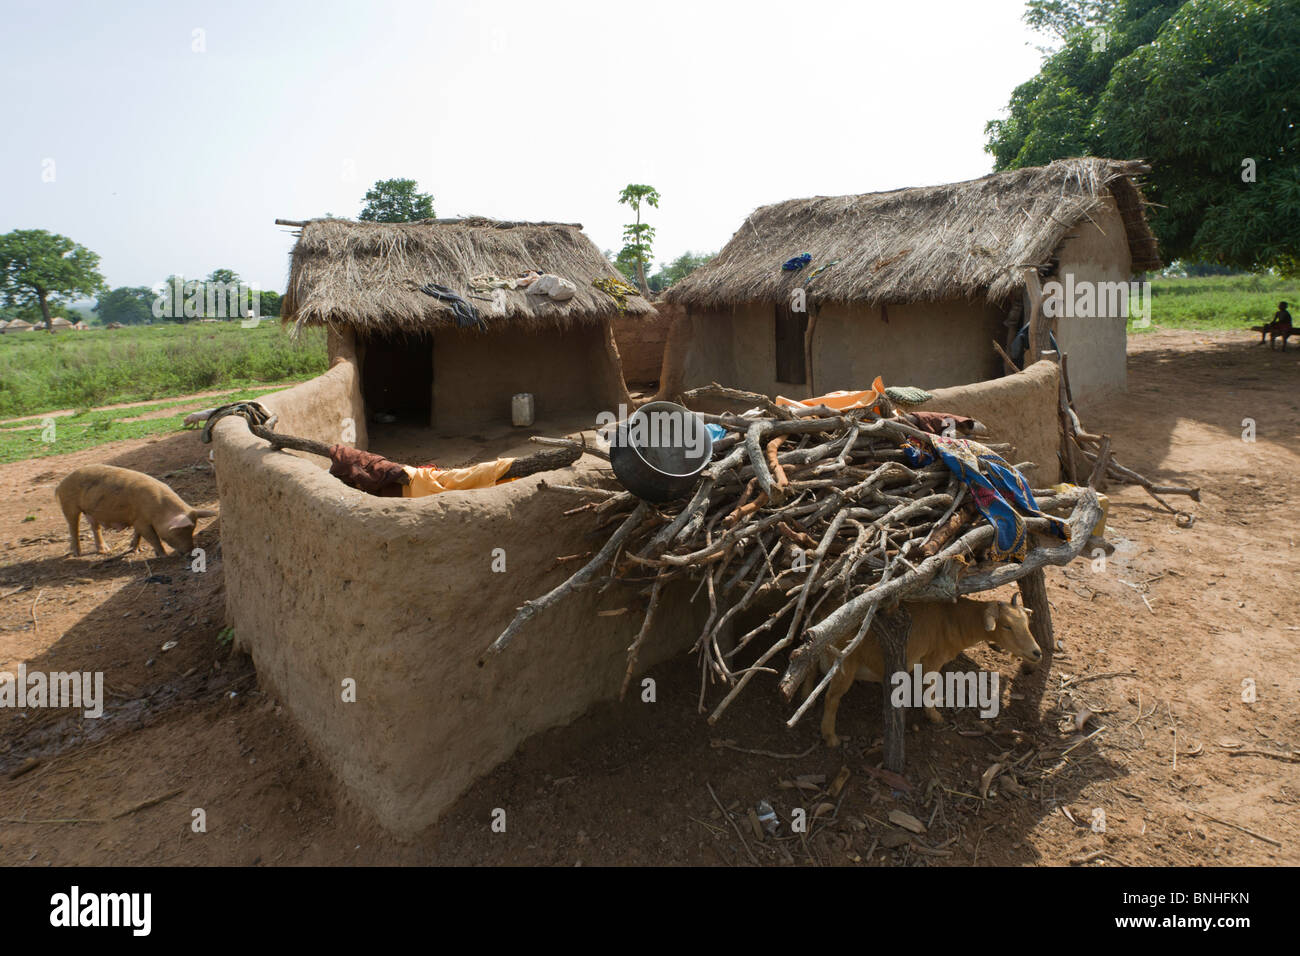 Dagarti household in the village of Sor No. 1, Gonja triangle, Damango district, Ghana. Stock Photo